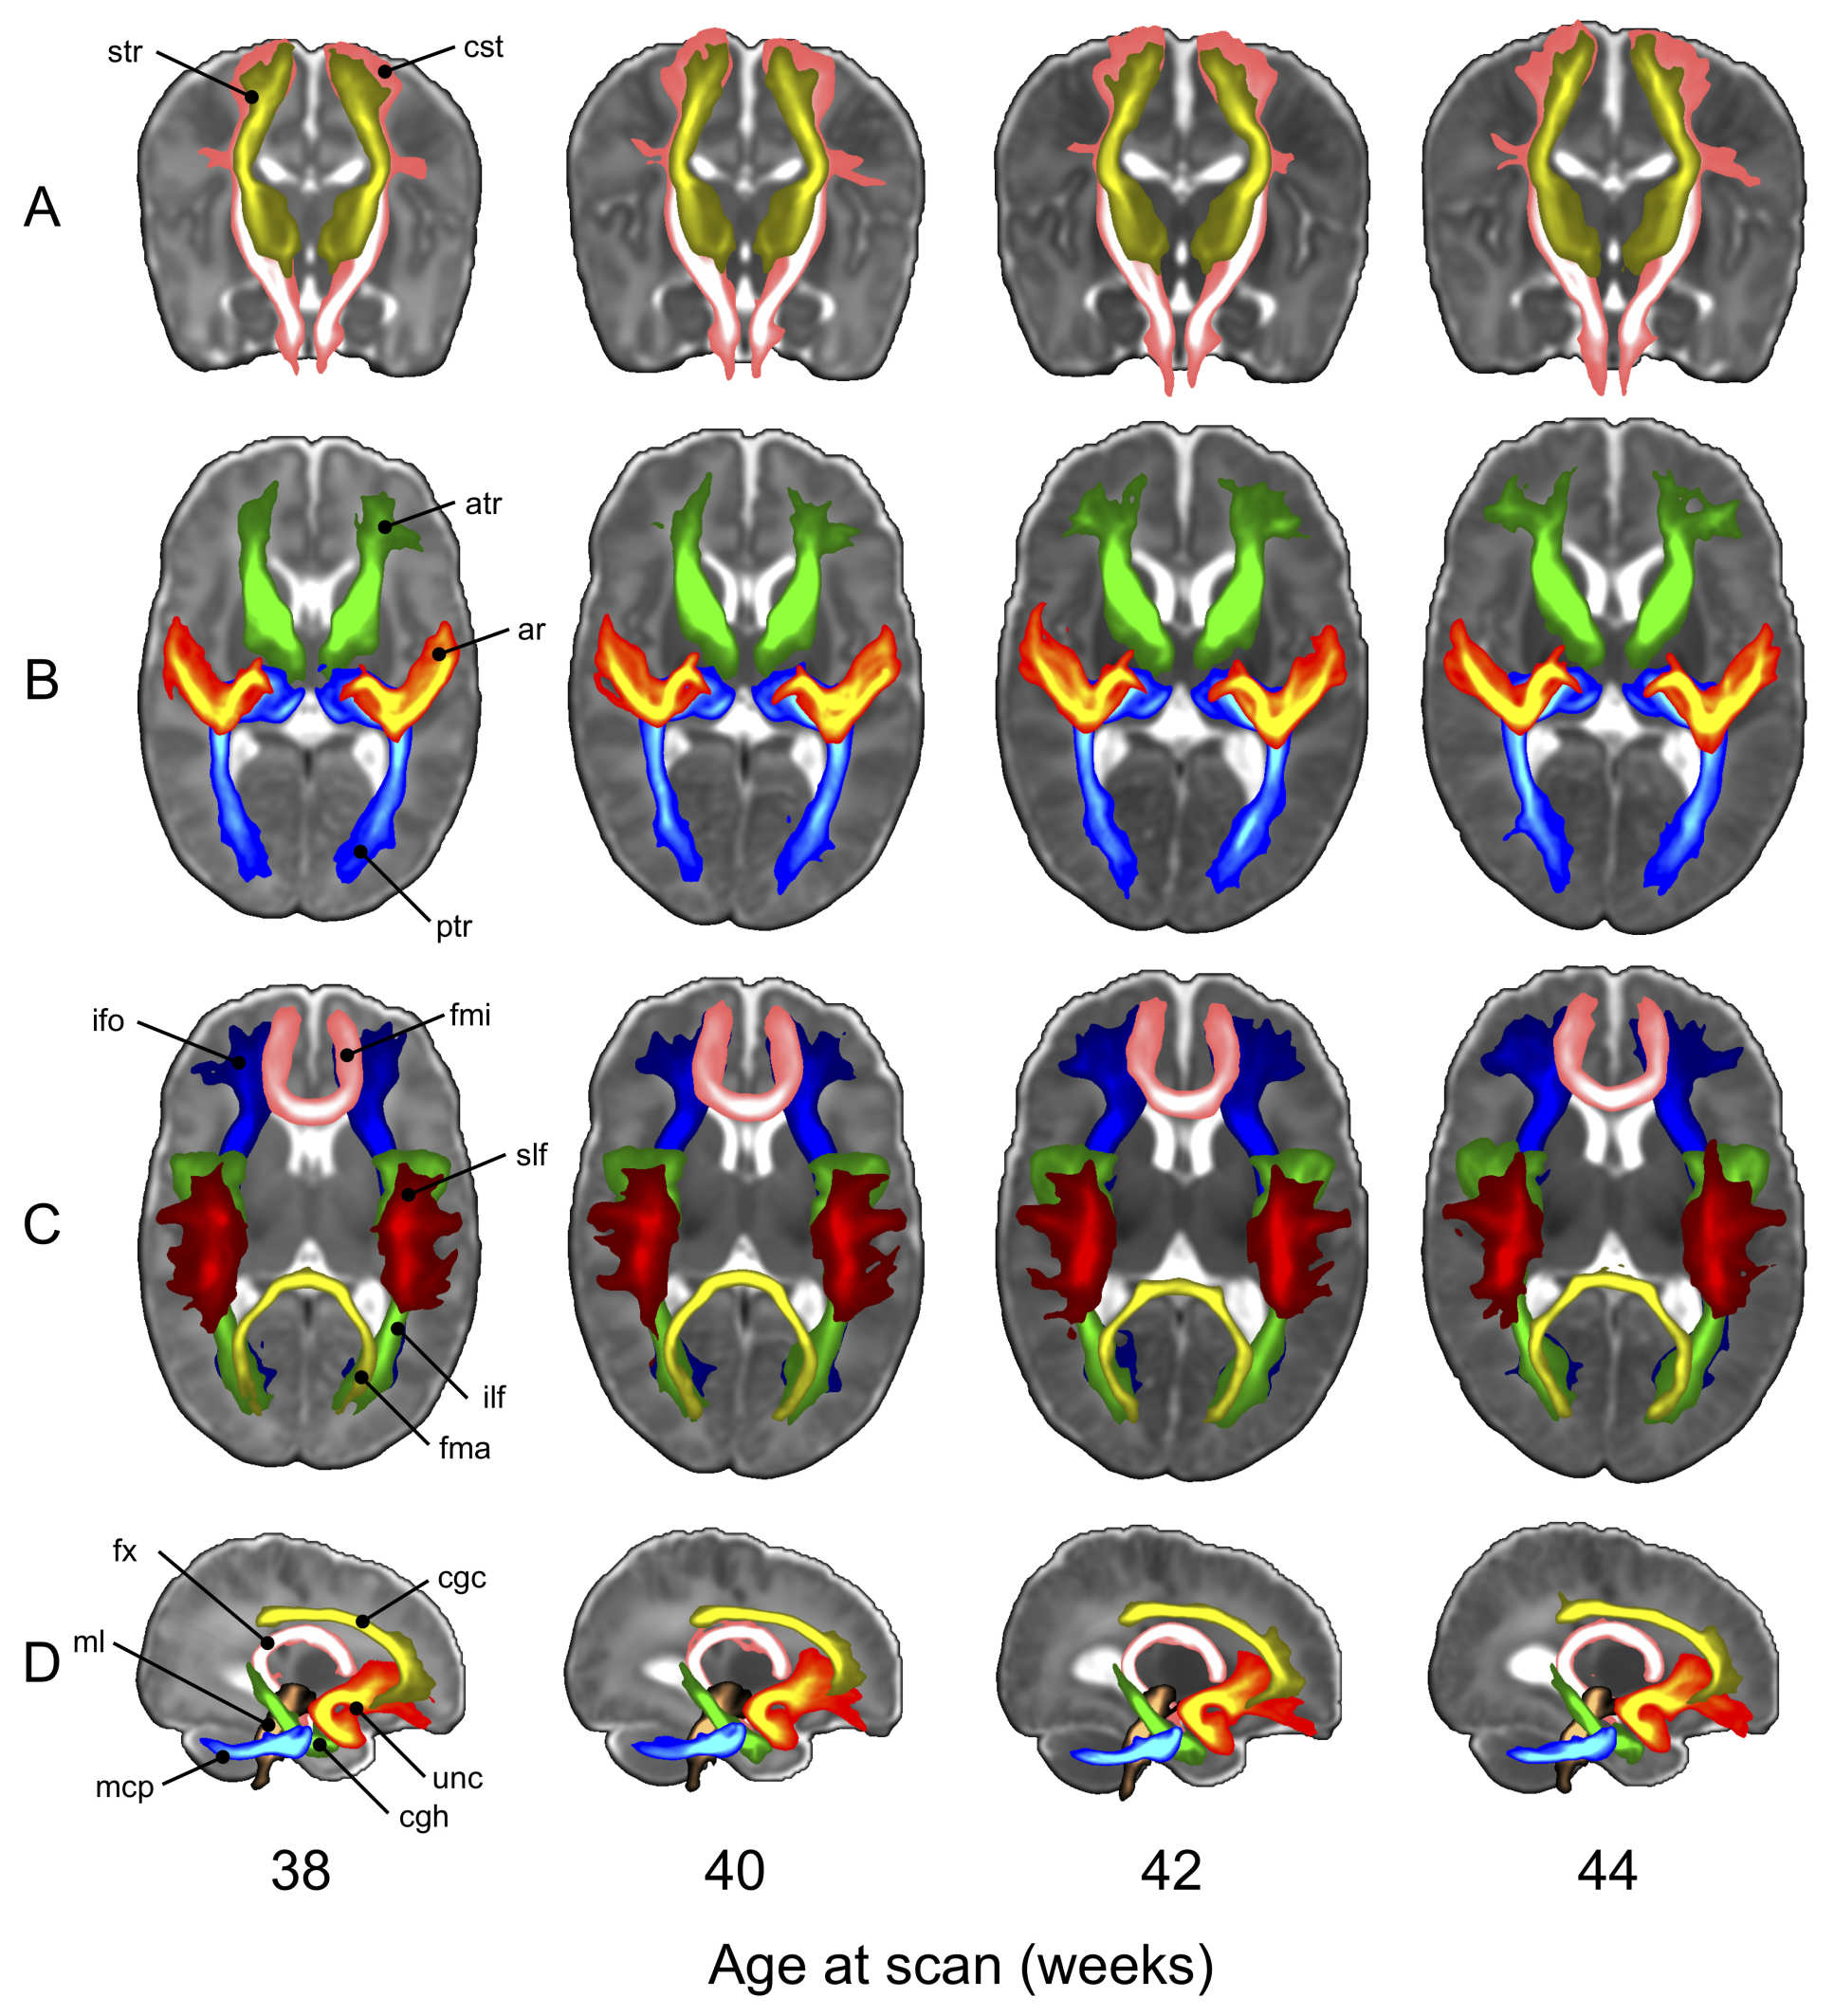 MRI scans of infant brains from the dHCP project